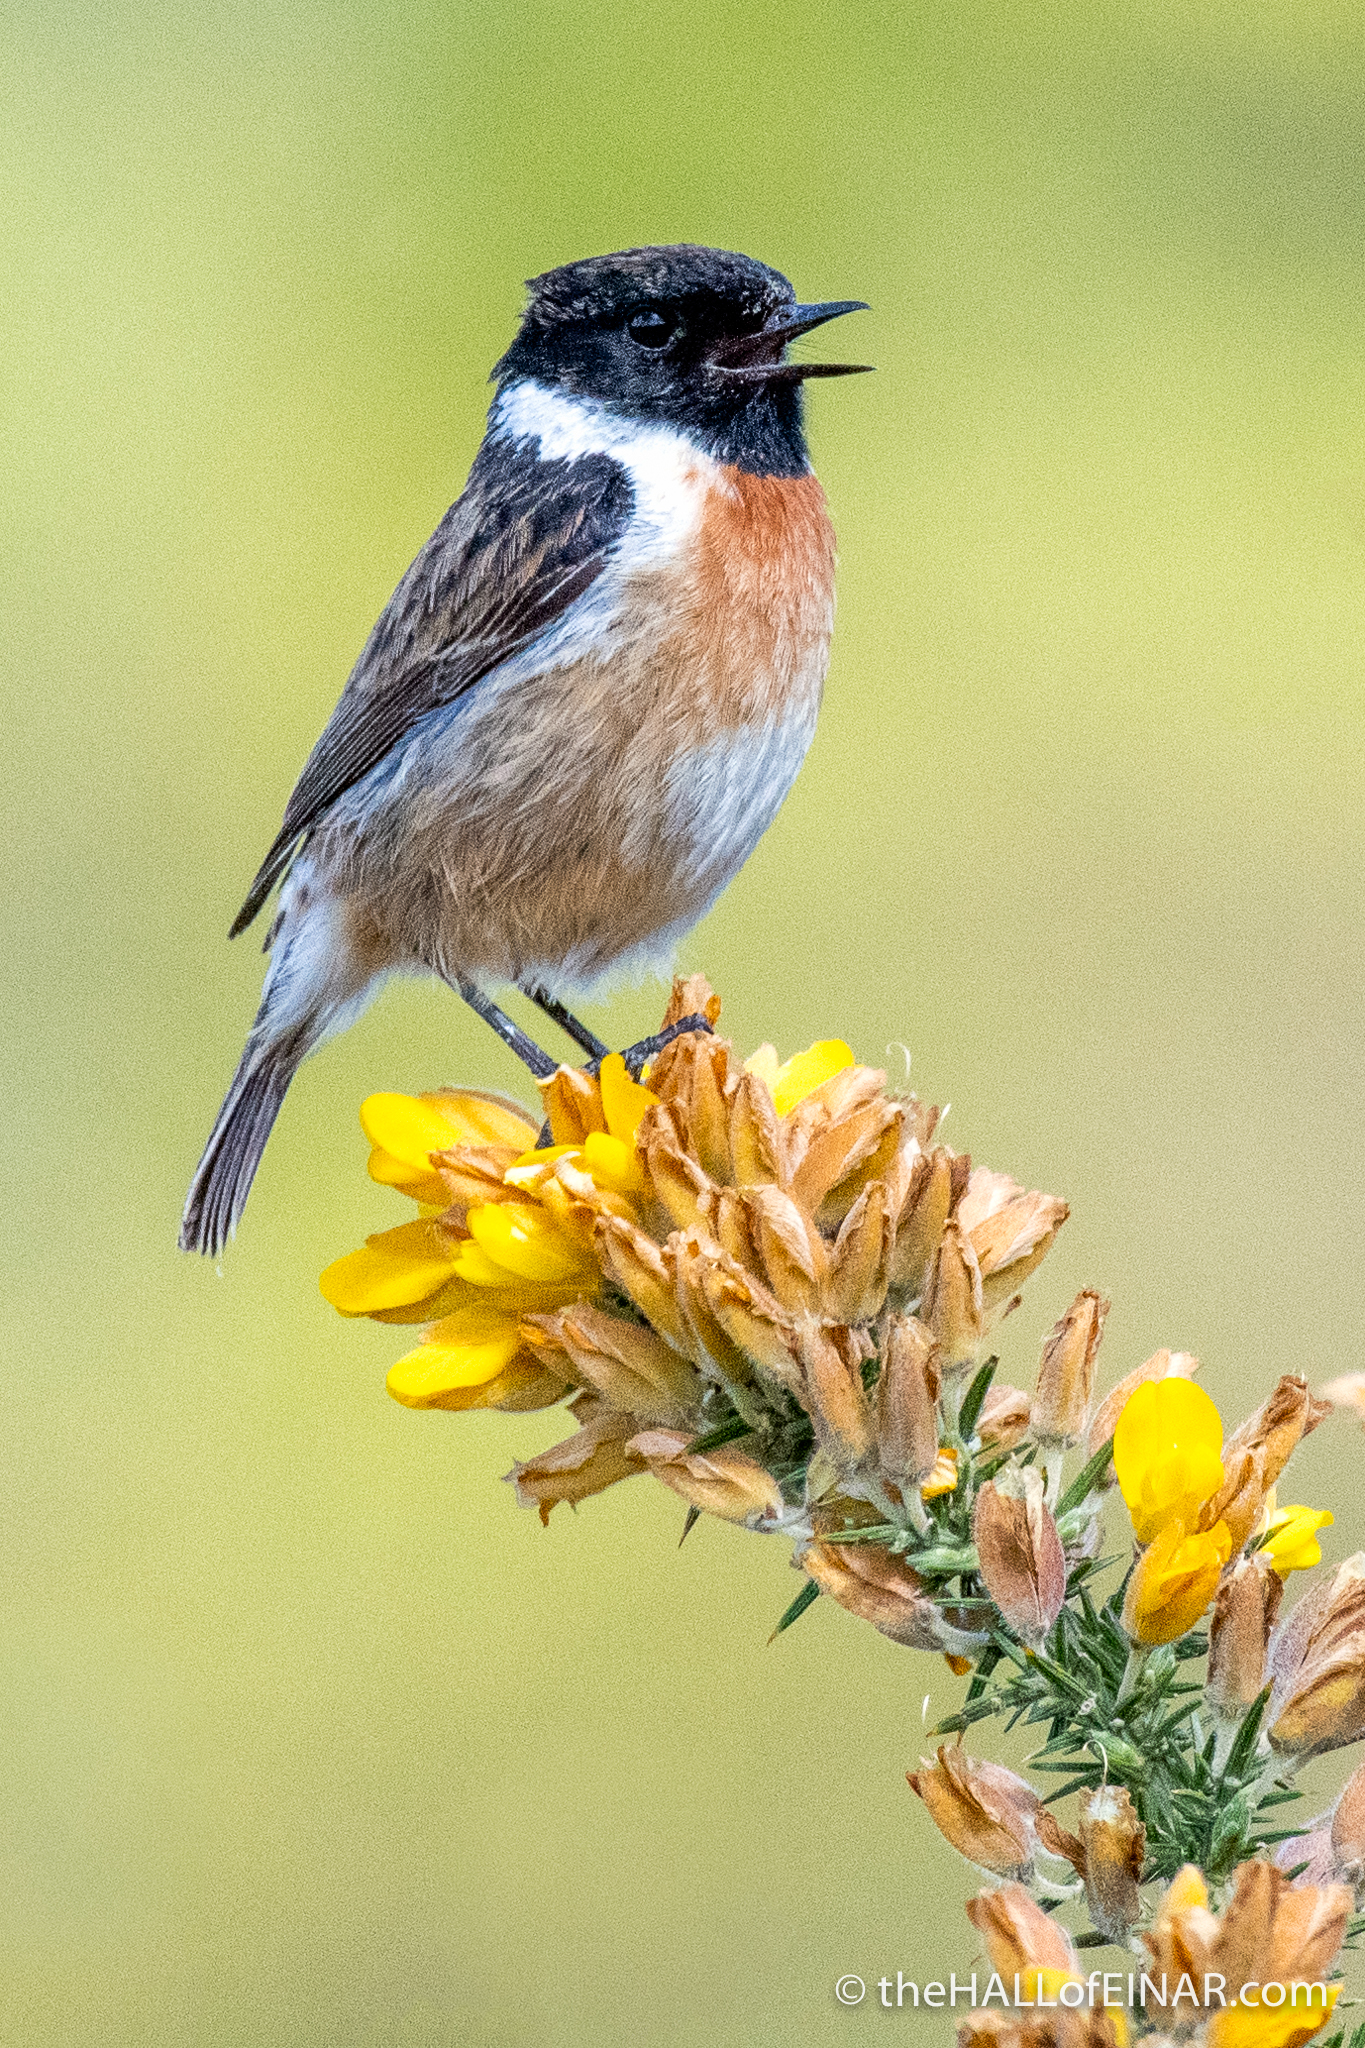 Stonechat - Trendlebere Down - The Hall of Einar - photograph (c) David Bailey (not the)